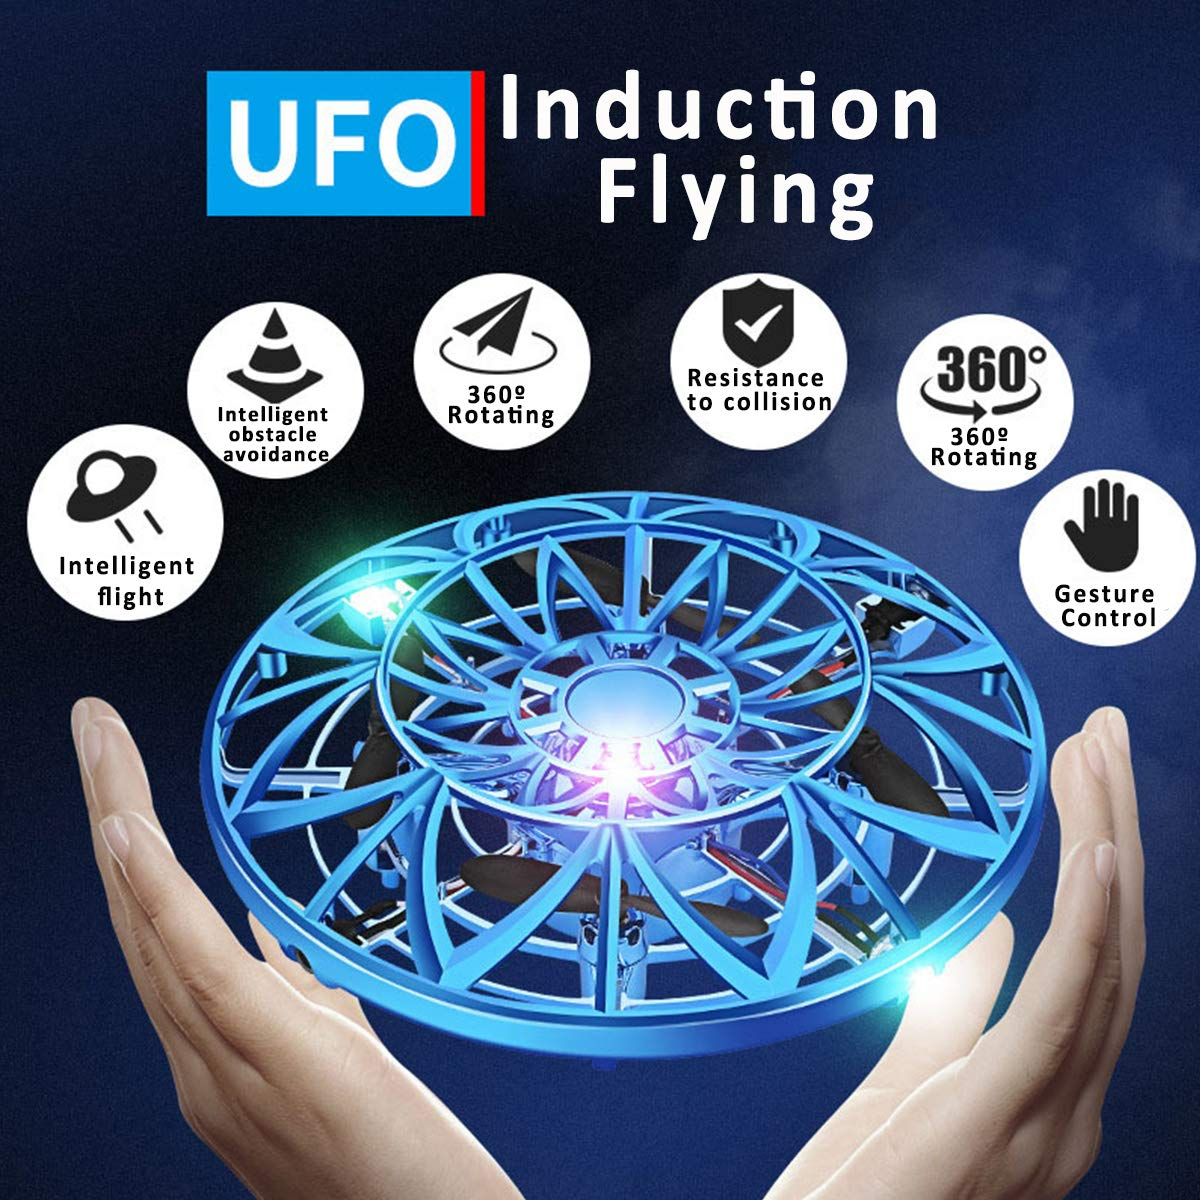 Flying Toy Ball Rc Toys Induction Flying Toy Mini Drones Helicopter Airplane with LED Lights Hand & Remote Controlled for 3+ Kids Girls Boys Indoor and Outdoor Gifts for Birthday (Flying Ball UFO) by HDsuit (Image #6)